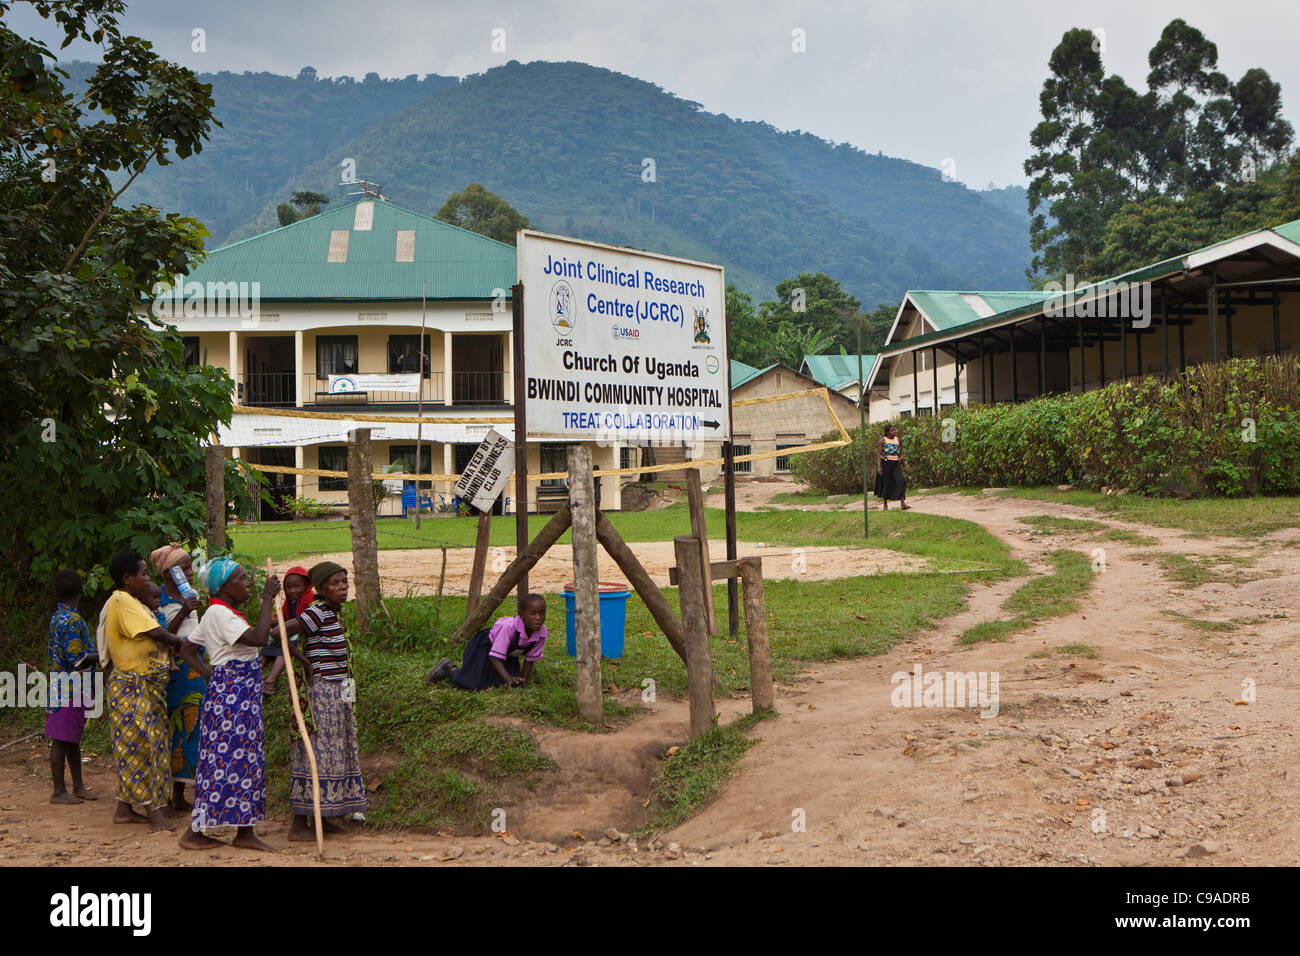 Elderly patients arrive at the gates of Bwindi Community hospital in the town of Buhoma, Uganda. - Stock Image